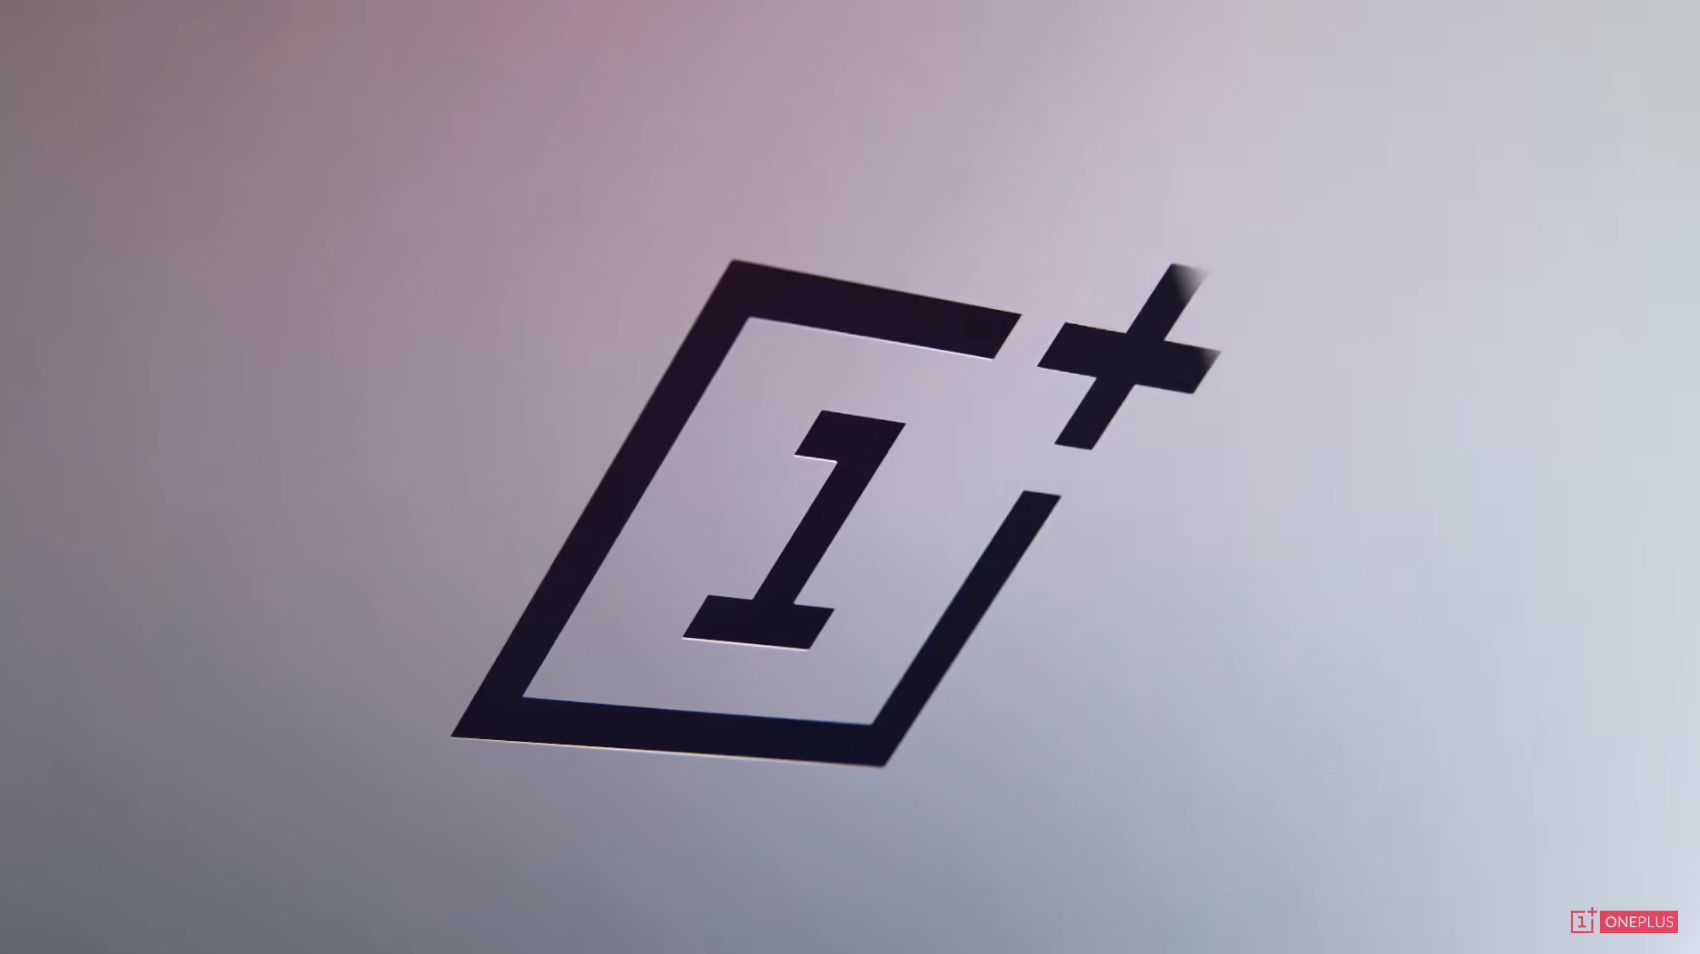 OnePlus 5 will be revealed on June 20th